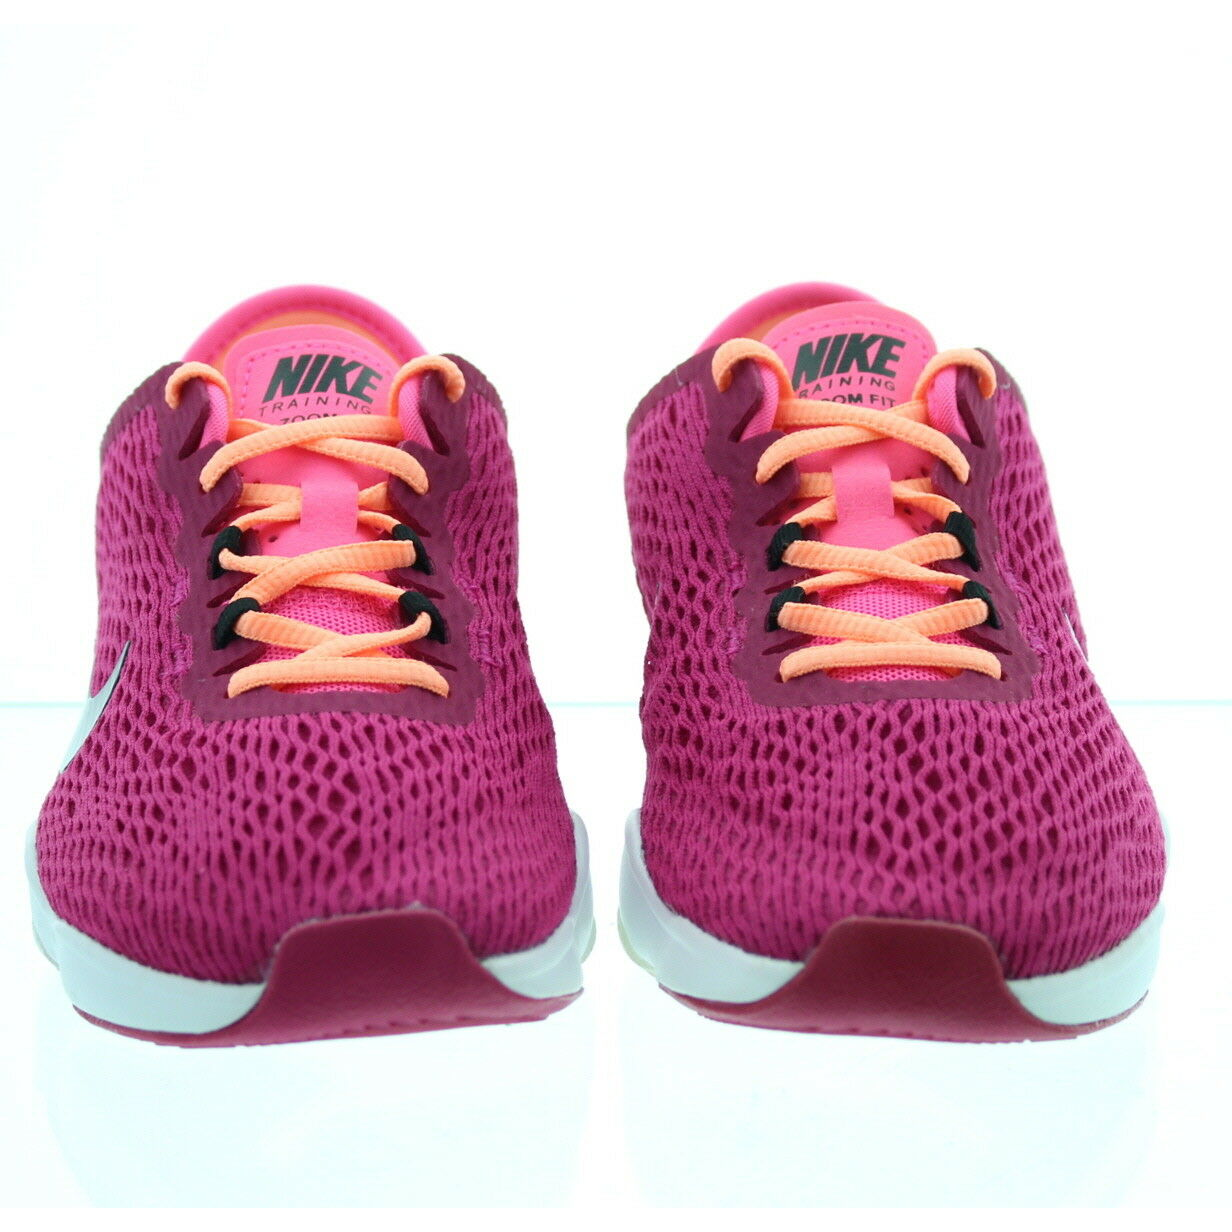 reputable site 46670 e43cf ... Nike 704658 Womens Zoom Fit Cross Cross Cross Trainer Training Low Top  Sneakers Shoes 2b8354 ...